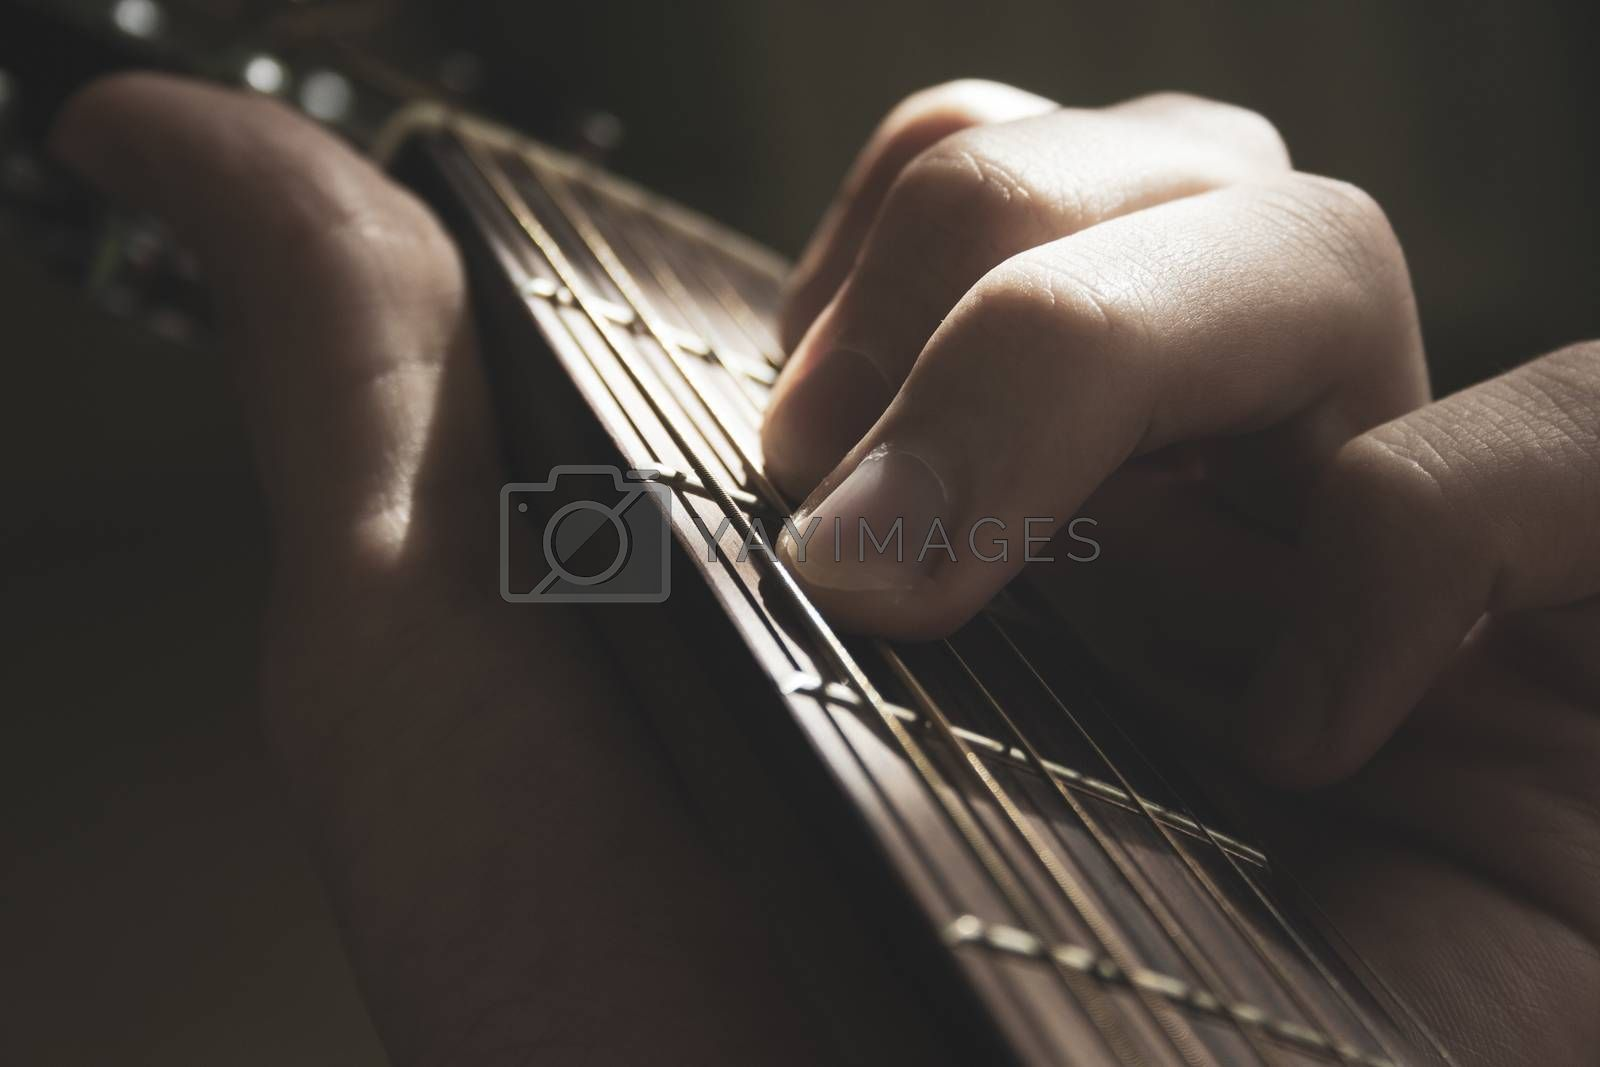 Man's hands fingers on the acoustic guitar strings close up macro shot on sun shine. Music, hobby and leisure, matte toned